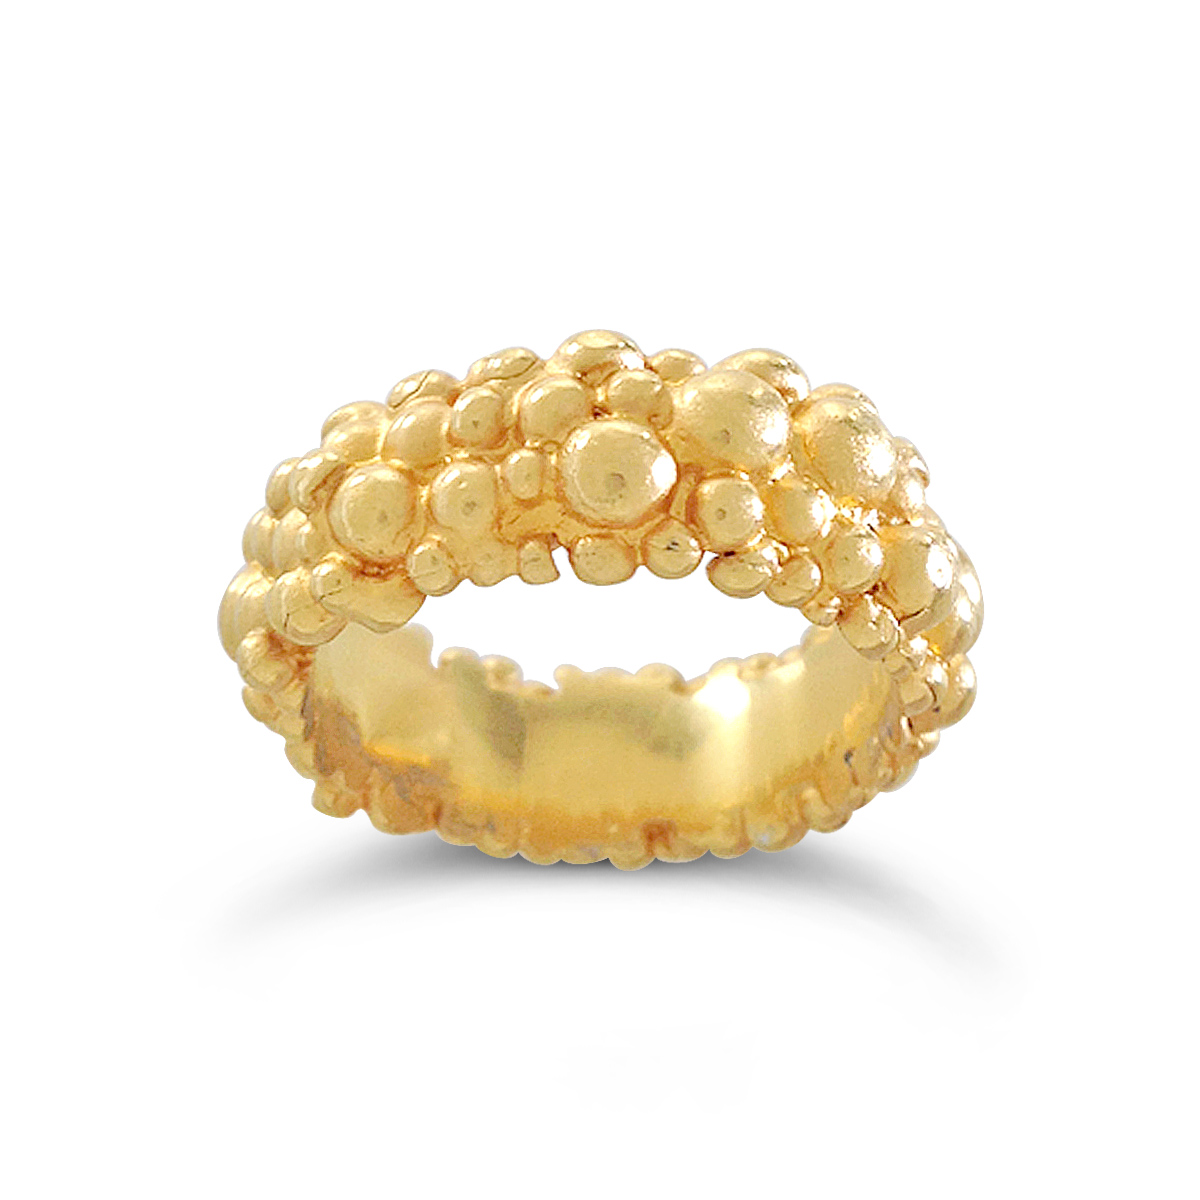 Molecule eternity ring gold plated silver 8mm wide